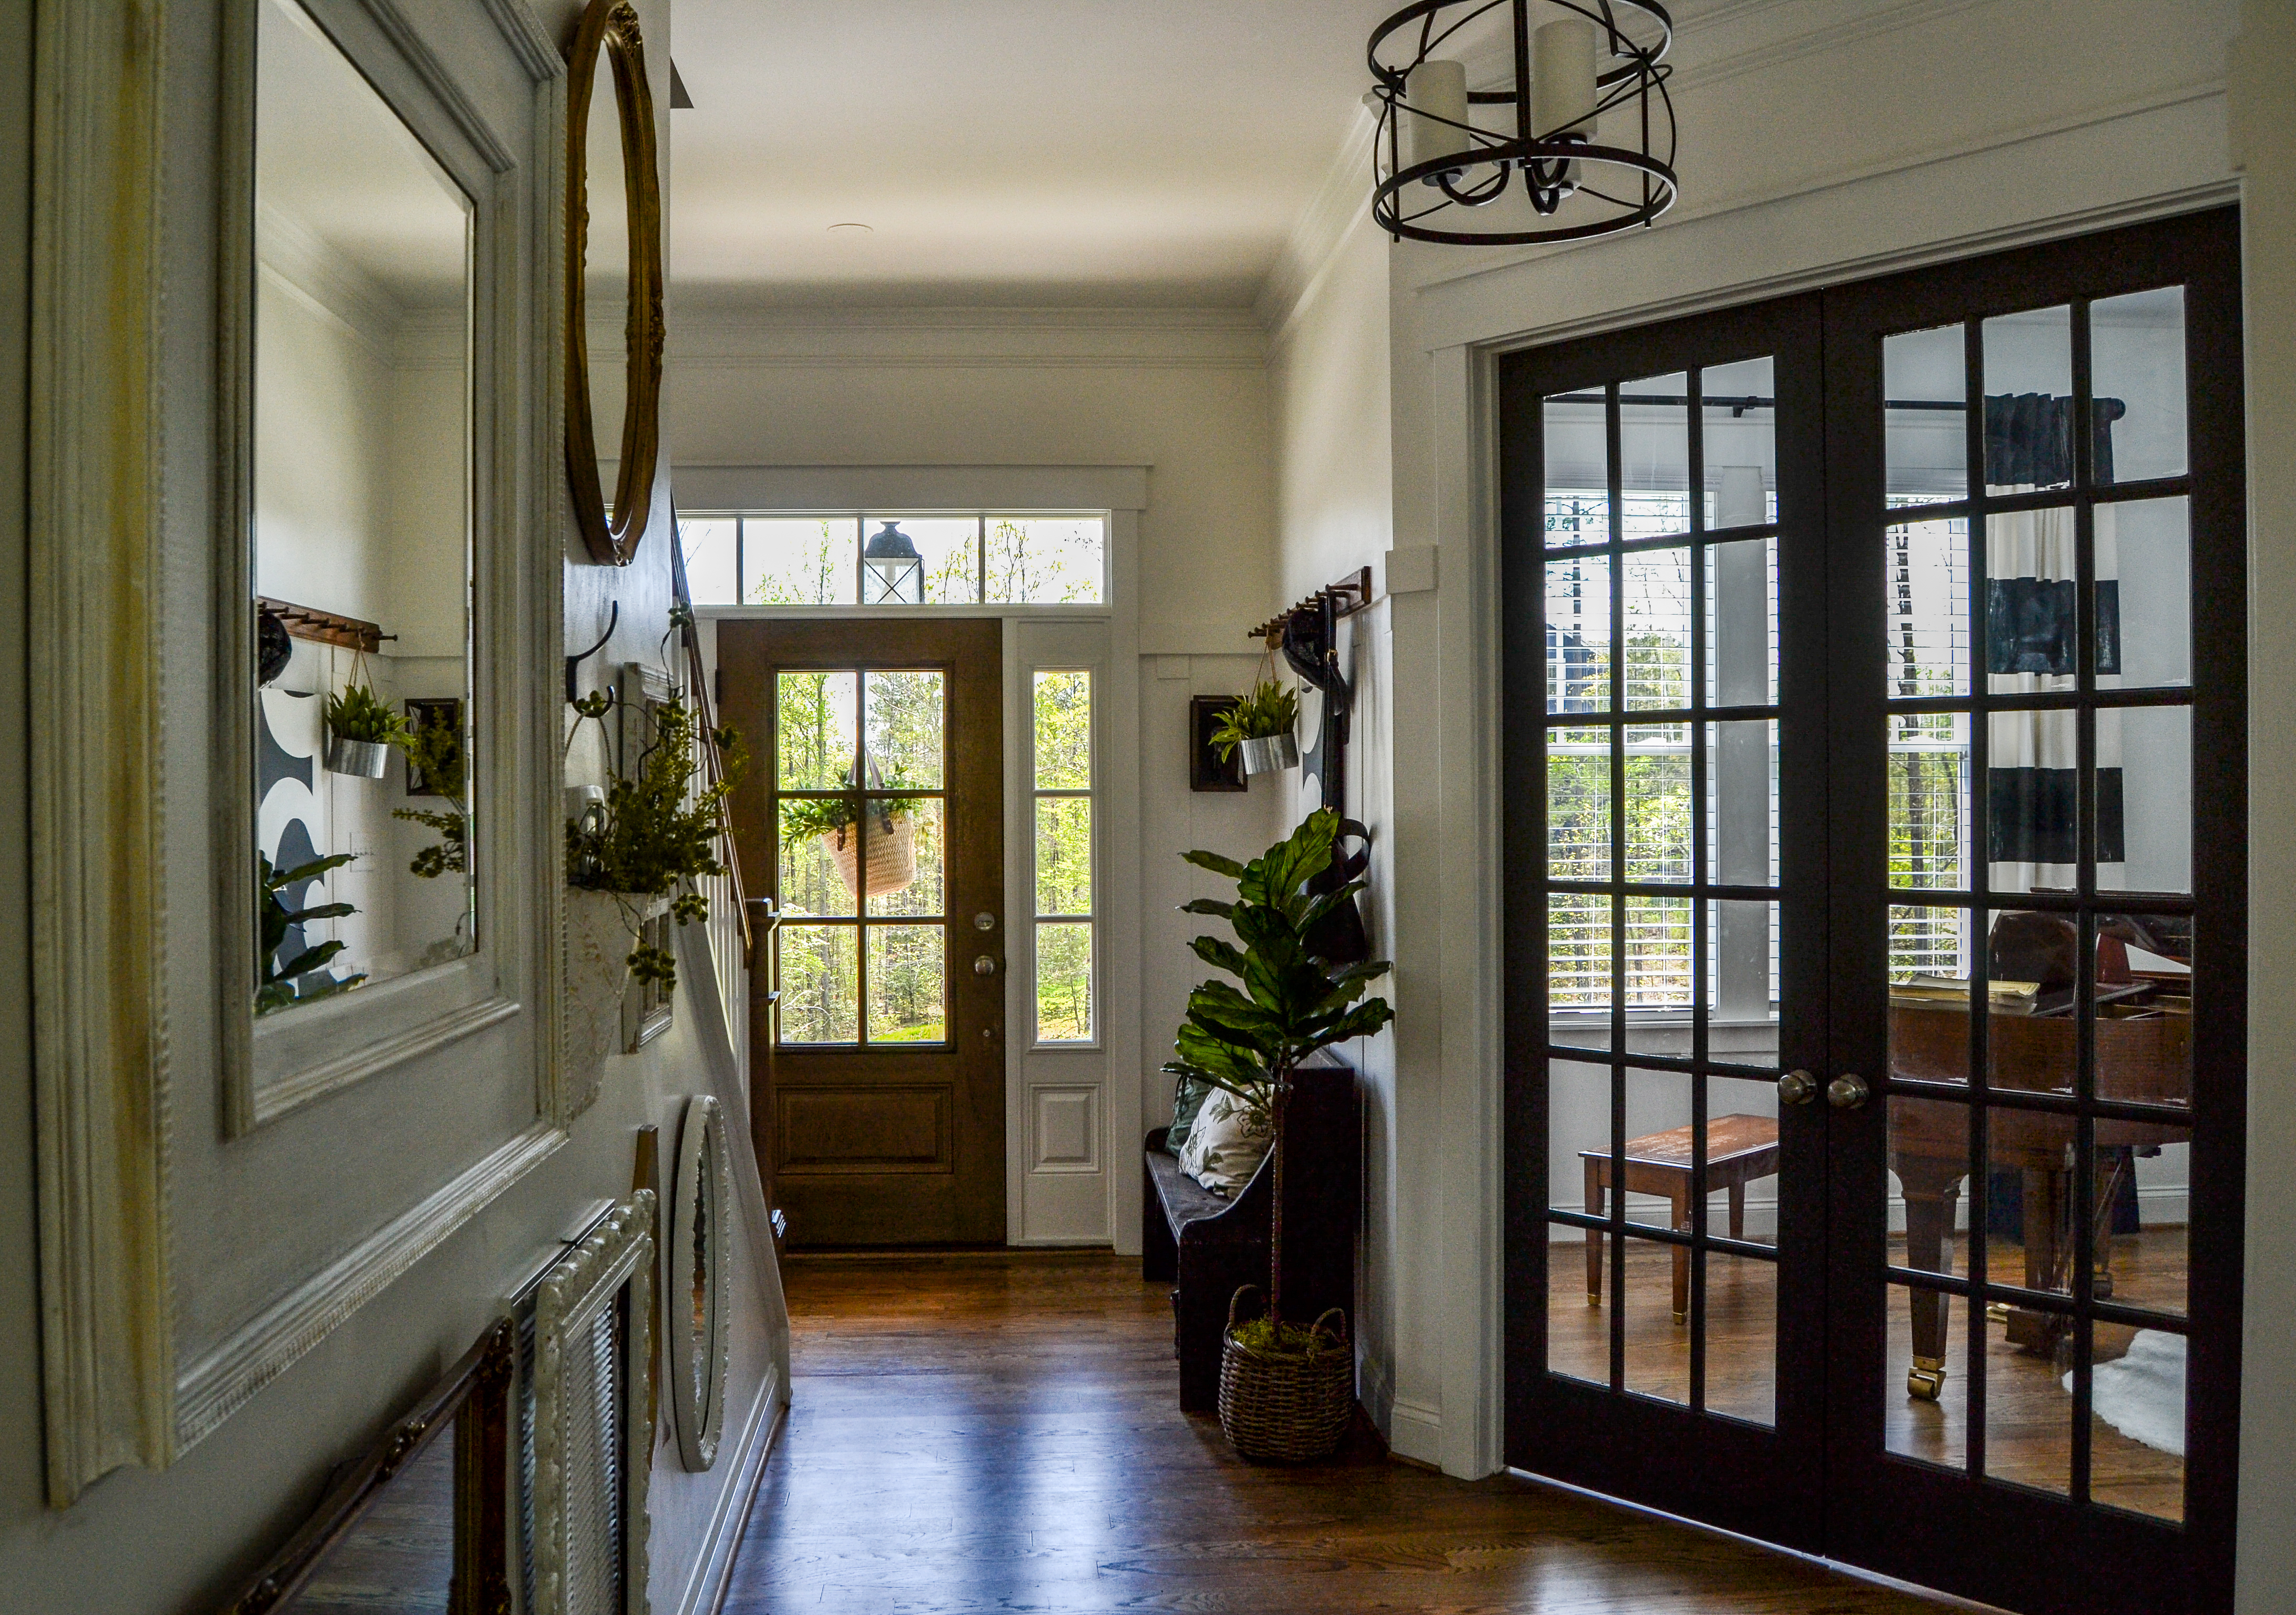 French Doors in the Foyer